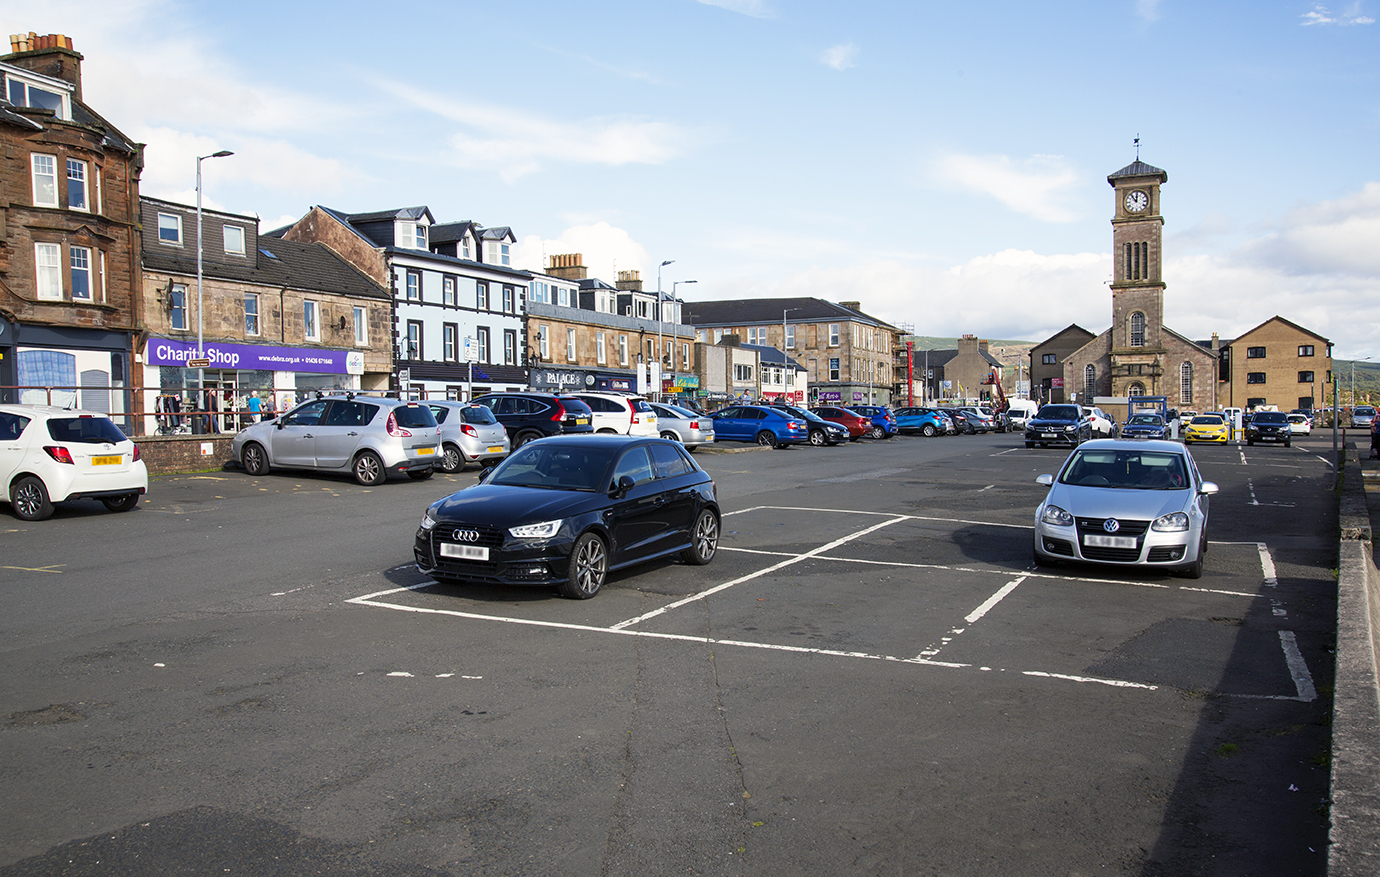 Plans for a new permit scheme could see the cost of long-term parking in Helensburgh reduced